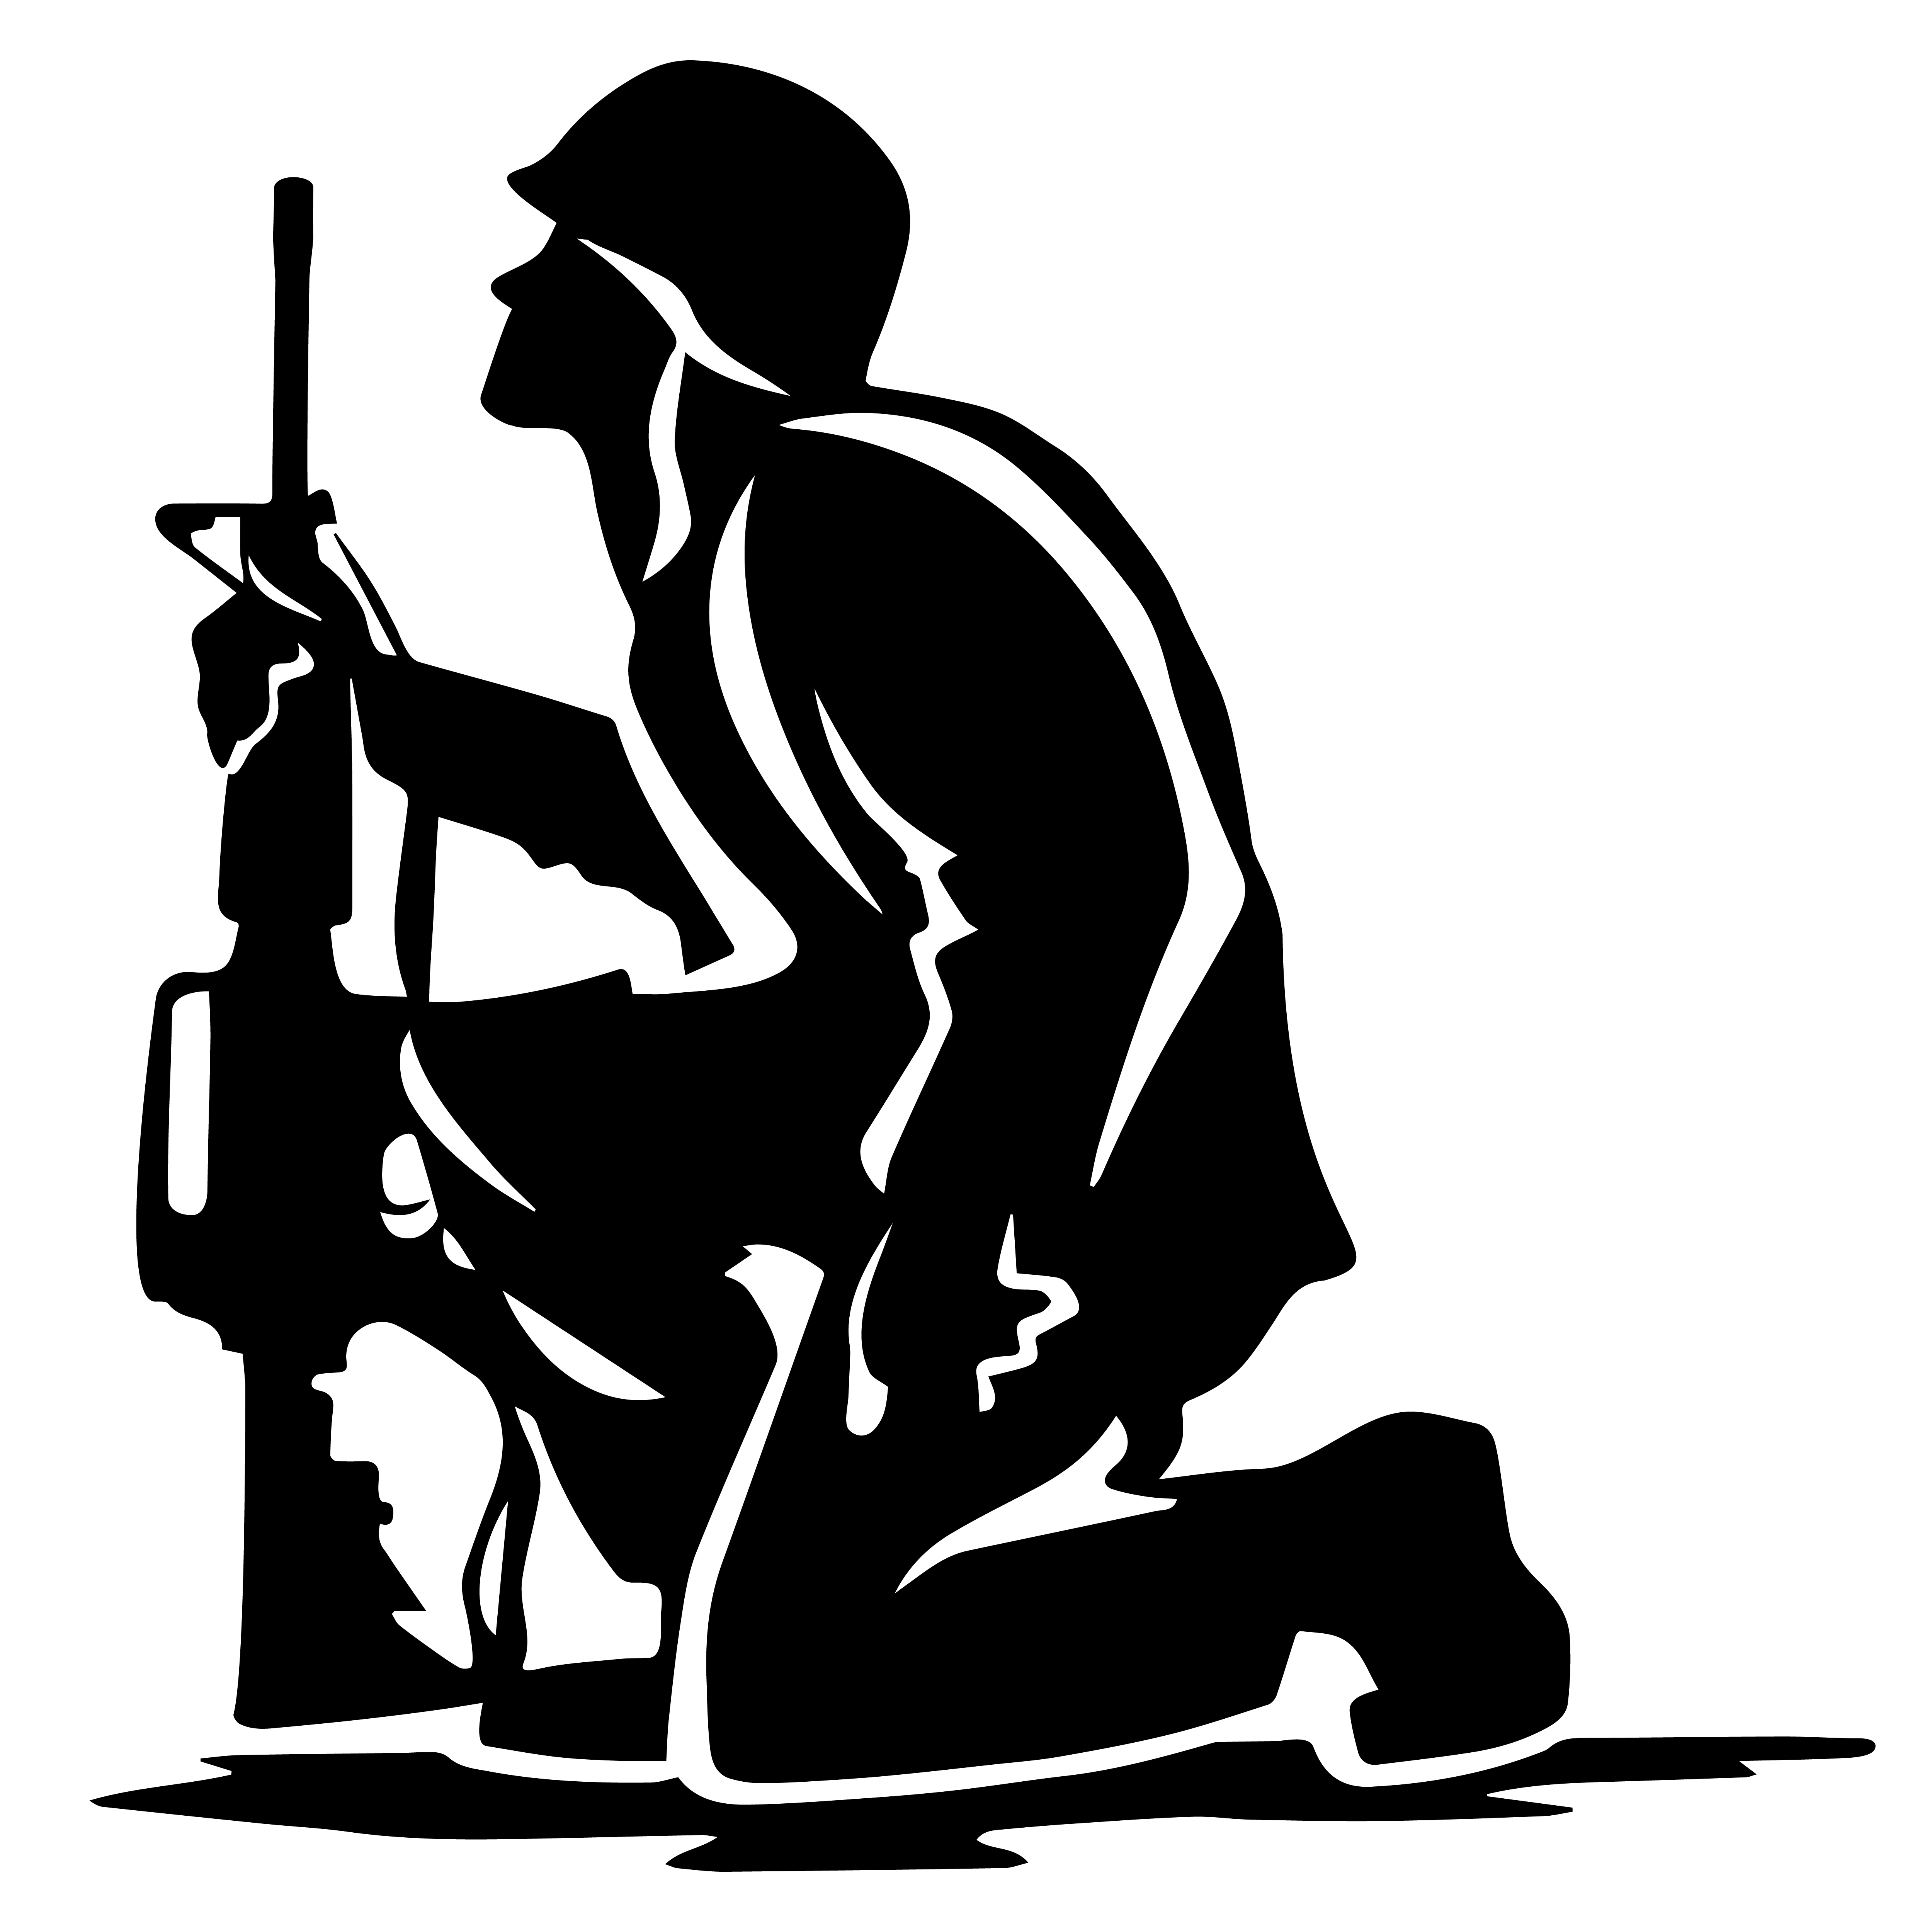 silhouette of soldier vector soldier silhouettes freevectors soldier silhouette of